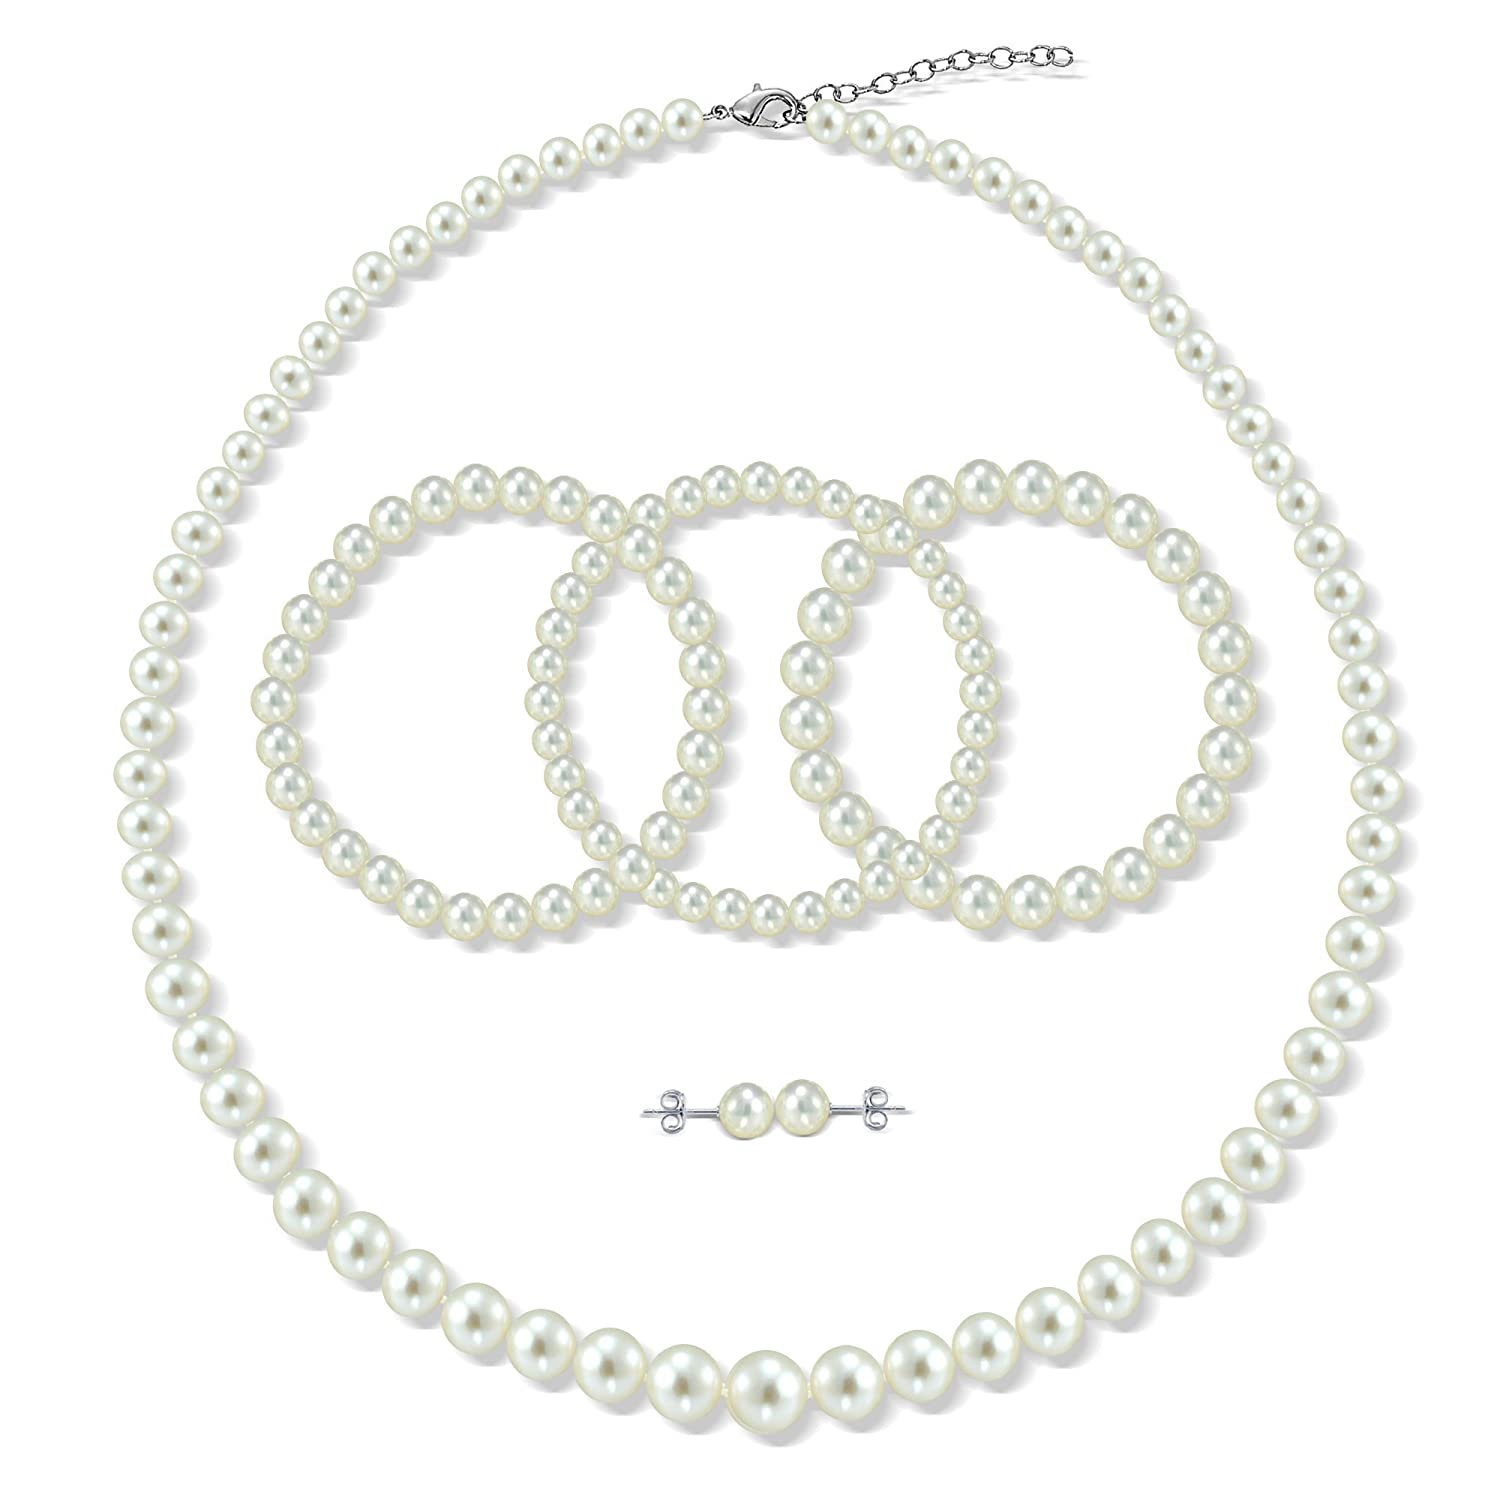 Sterling Silver Graduated 4-8.5mm White Freshwater Cultured Pearl Necklace, Bracelet & Stud Earrings